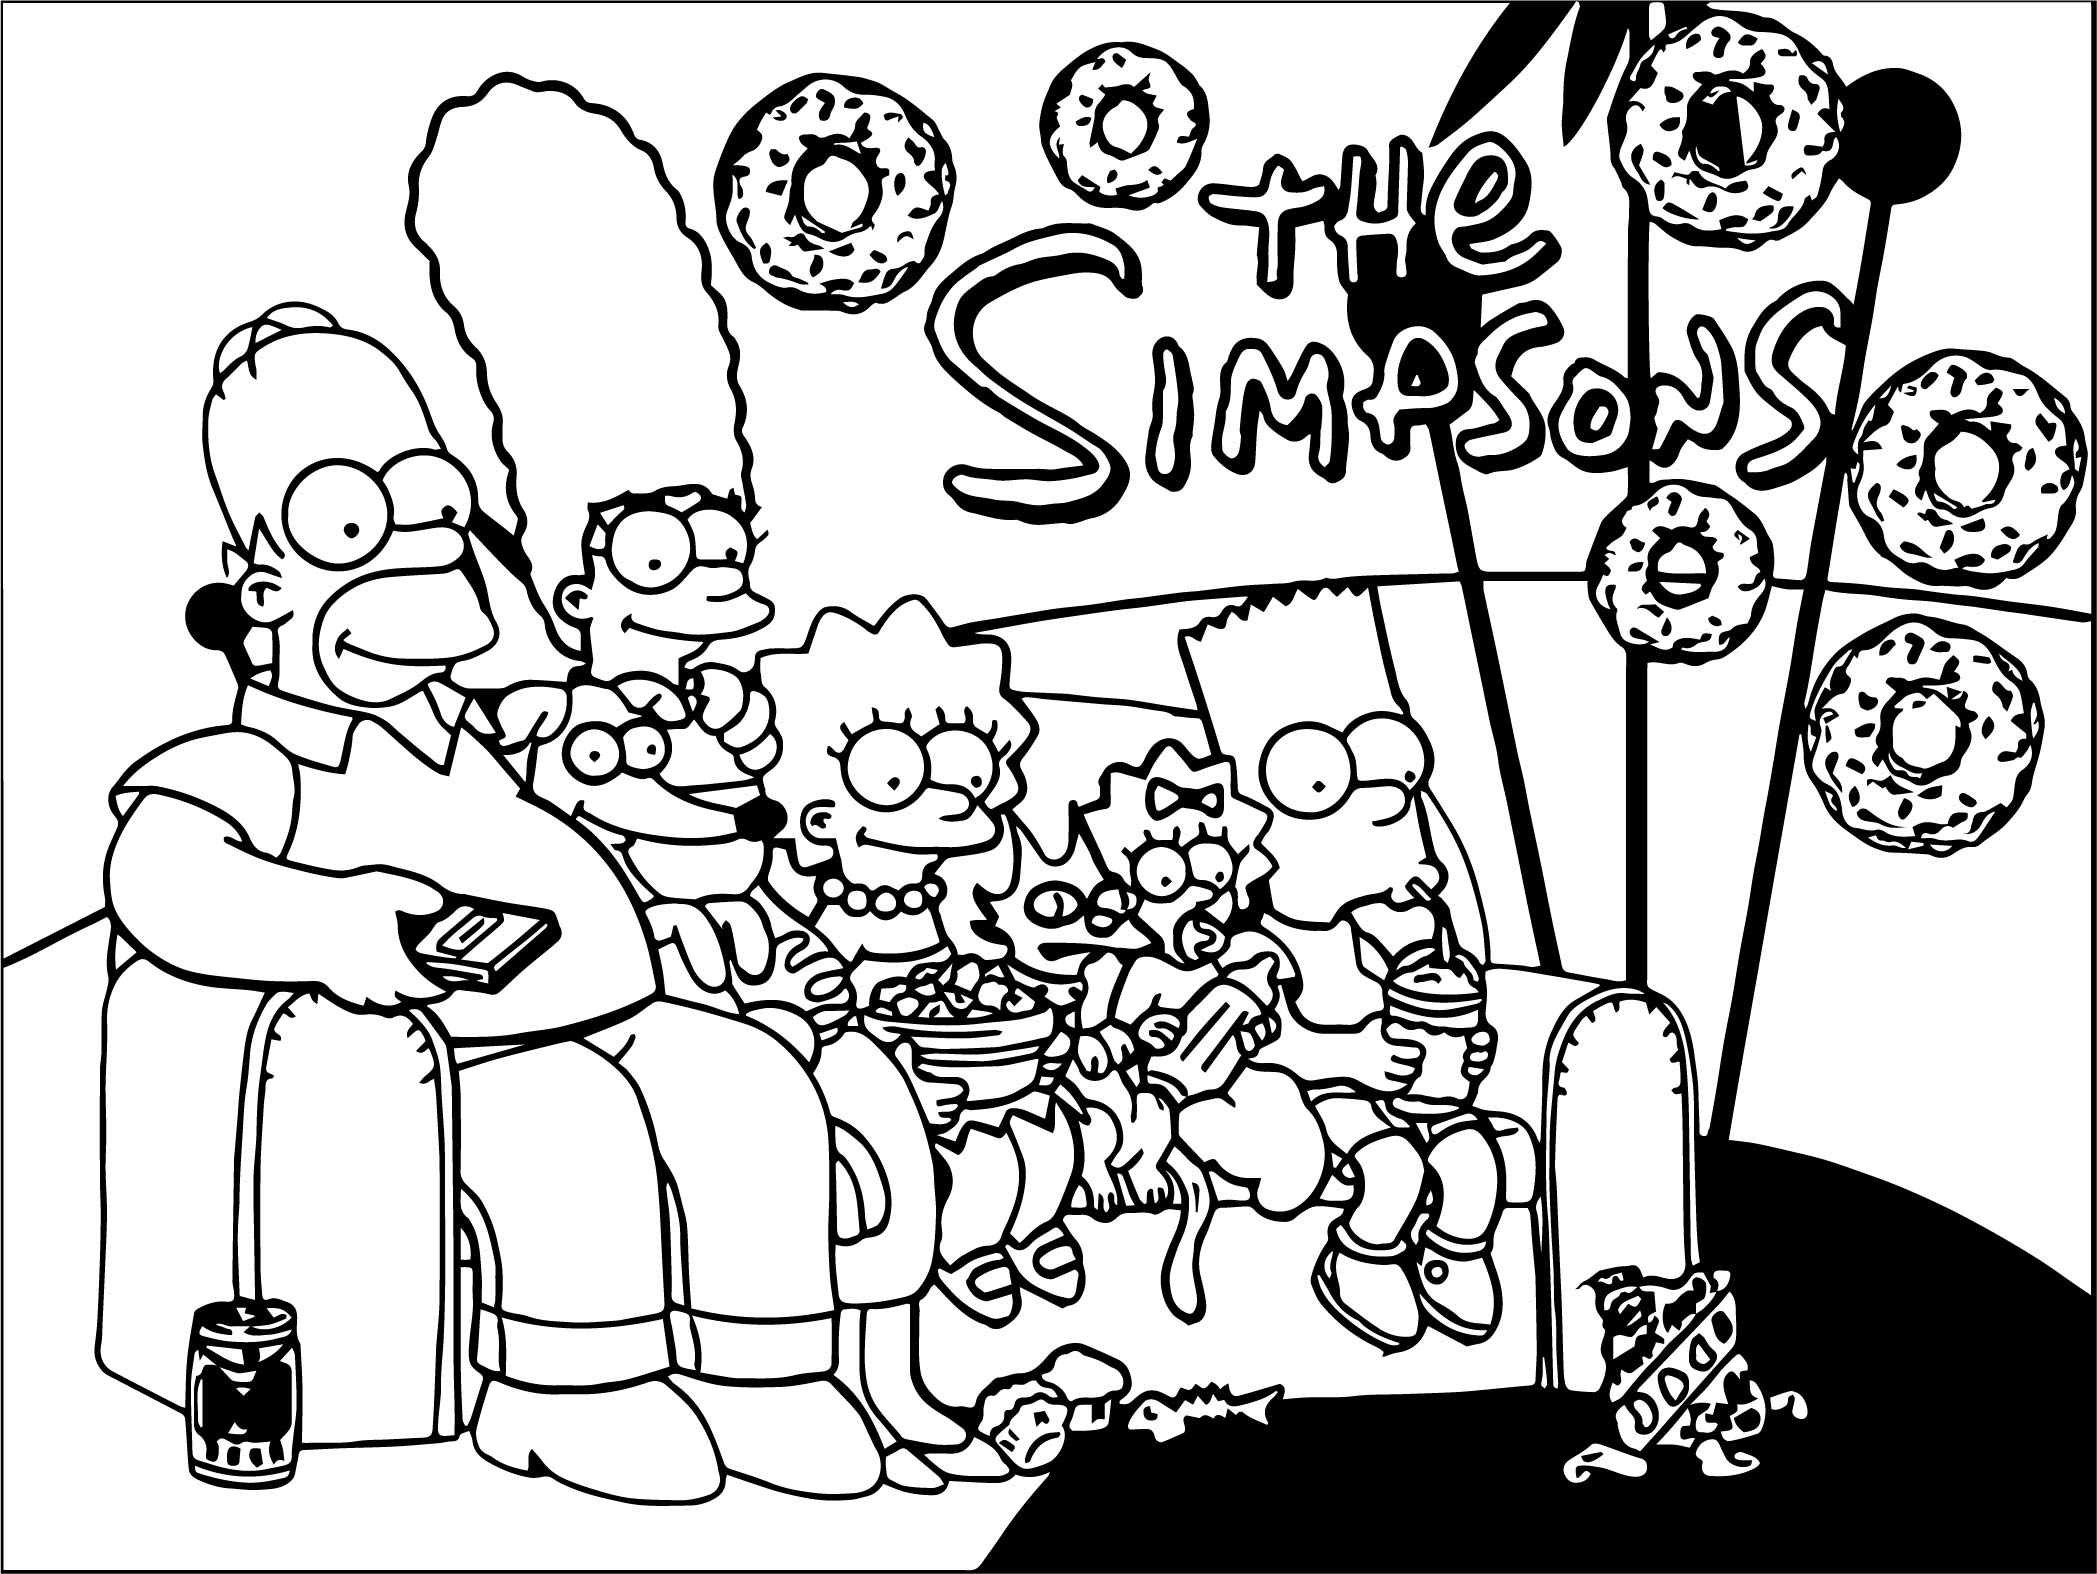 New Wallpapers The Simpsons Coloring Page | Wecoloringpage